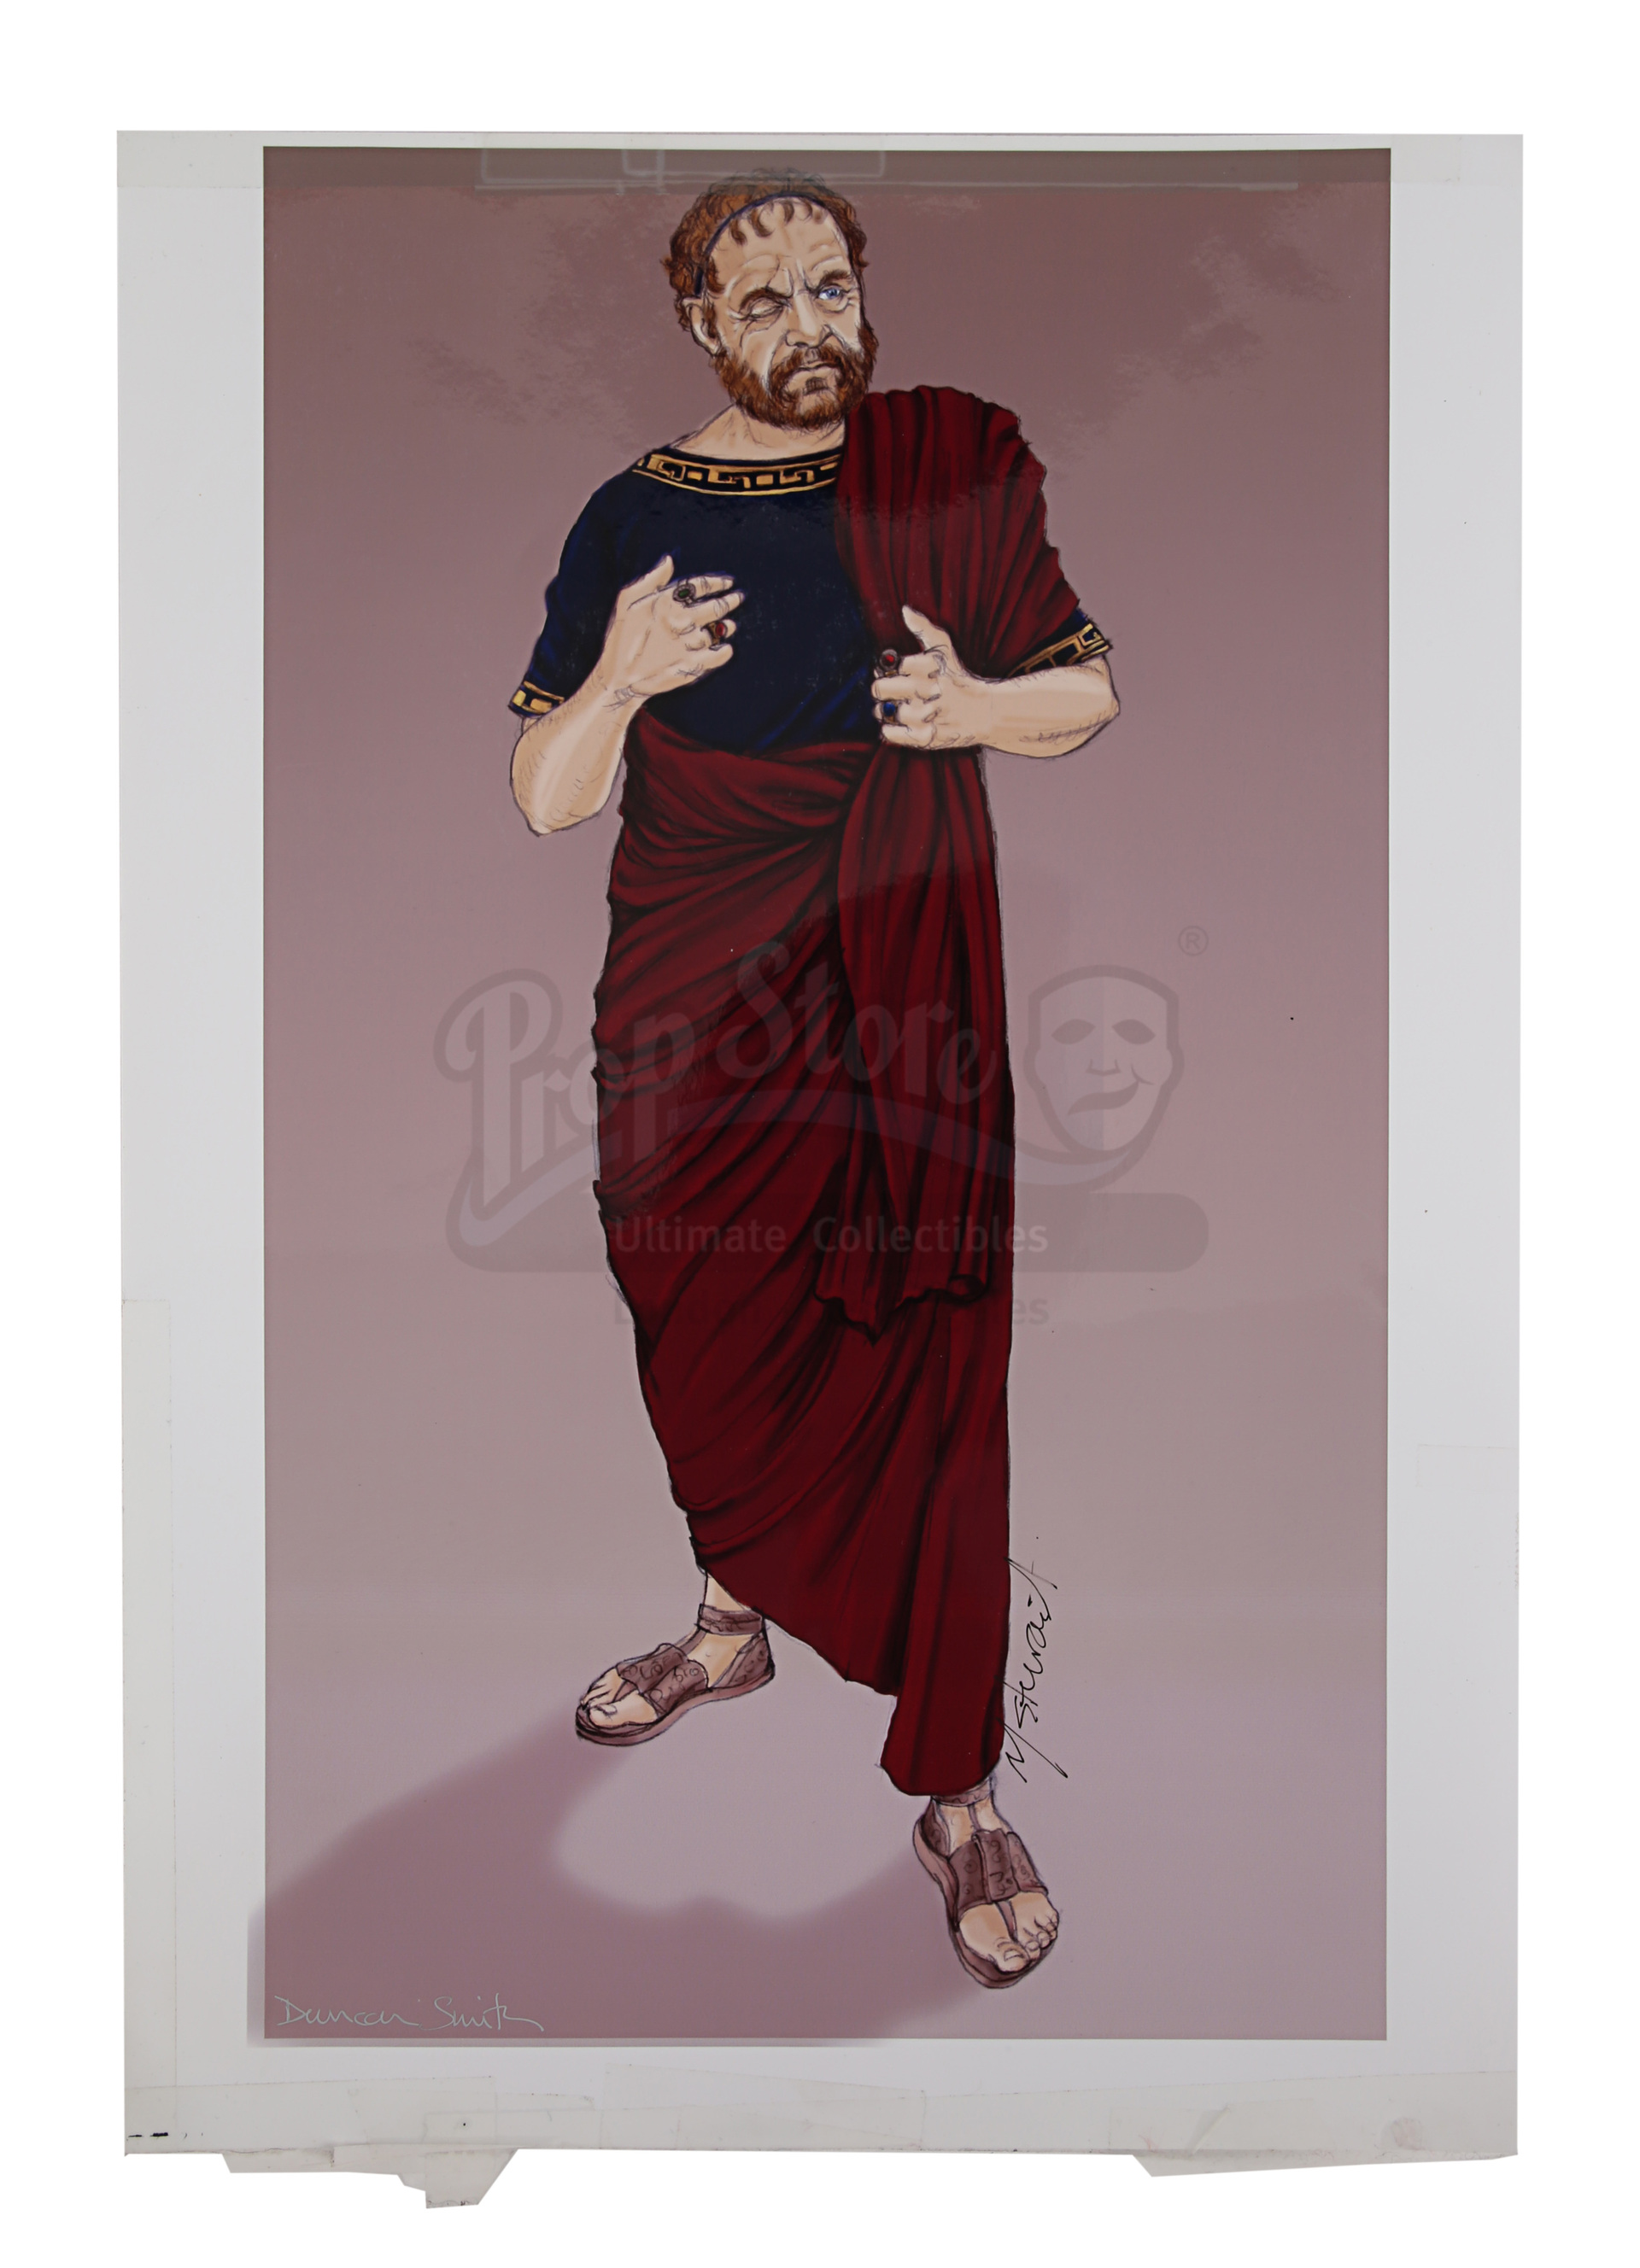 ALEXANDER (2004) - Hand-Drawn Alexander (Colin Farrell) Costume Sketches, Printed Character Concept - Image 3 of 10